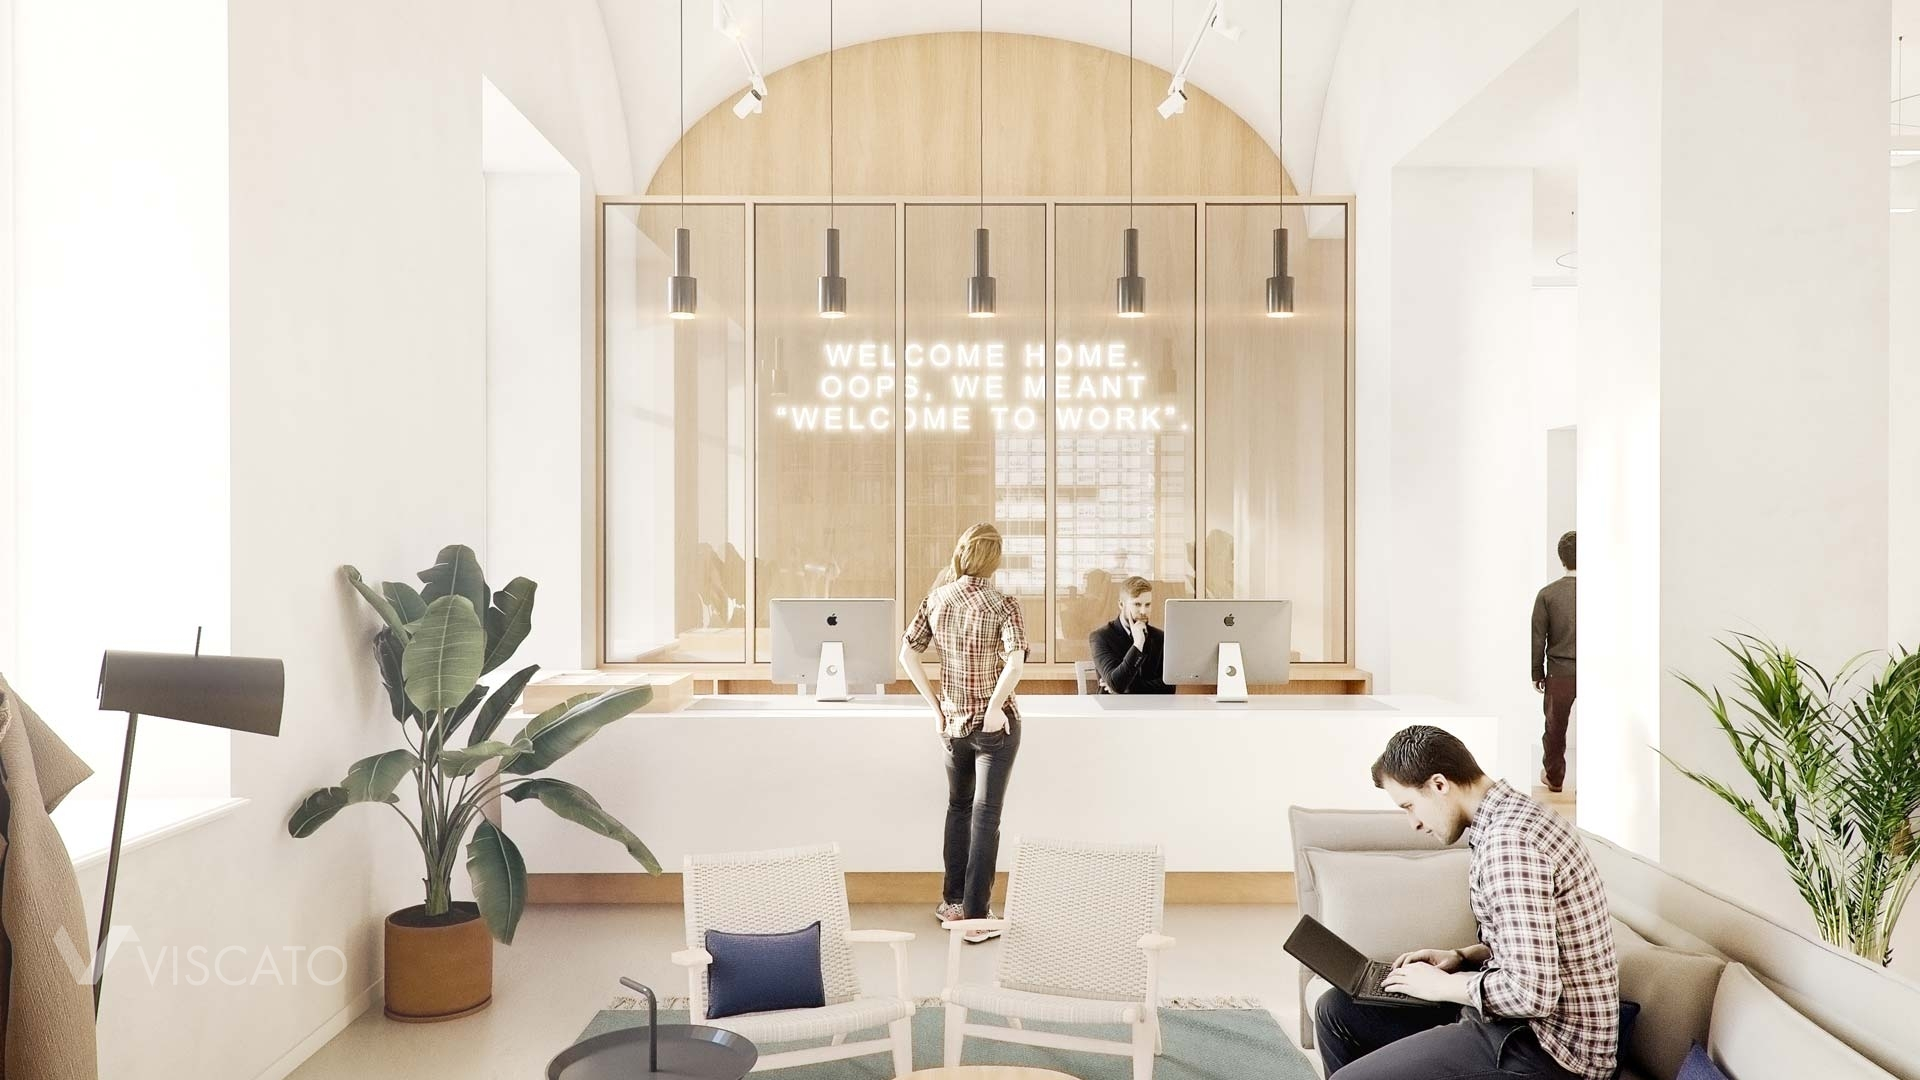 Office with white walls, Viscato 3D